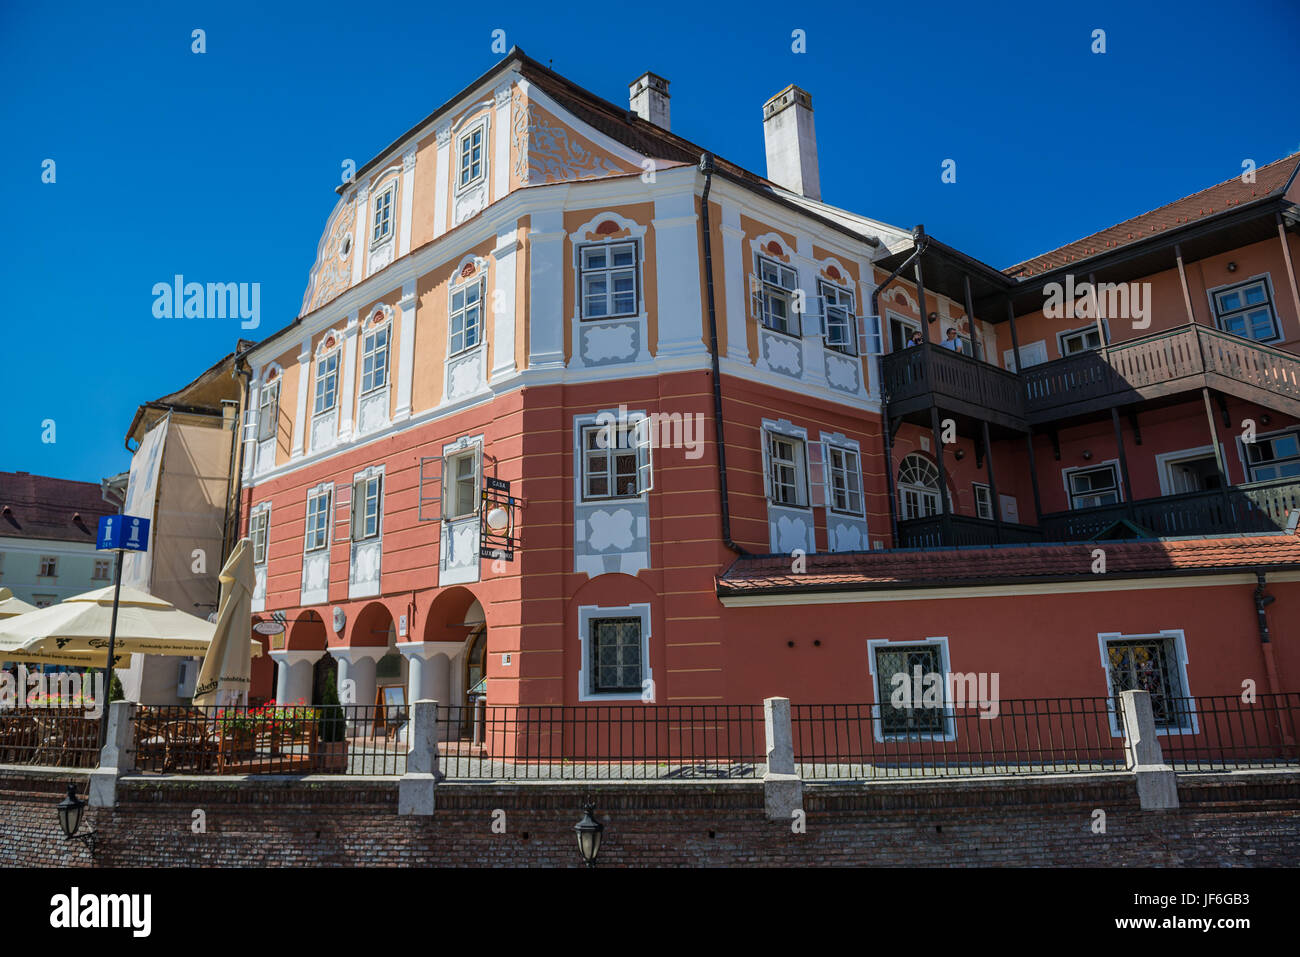 Casa Luxemburg hotel in historical building on a Small Square, Historic Center of Sibiu city of Transylvania region, - Stock Image